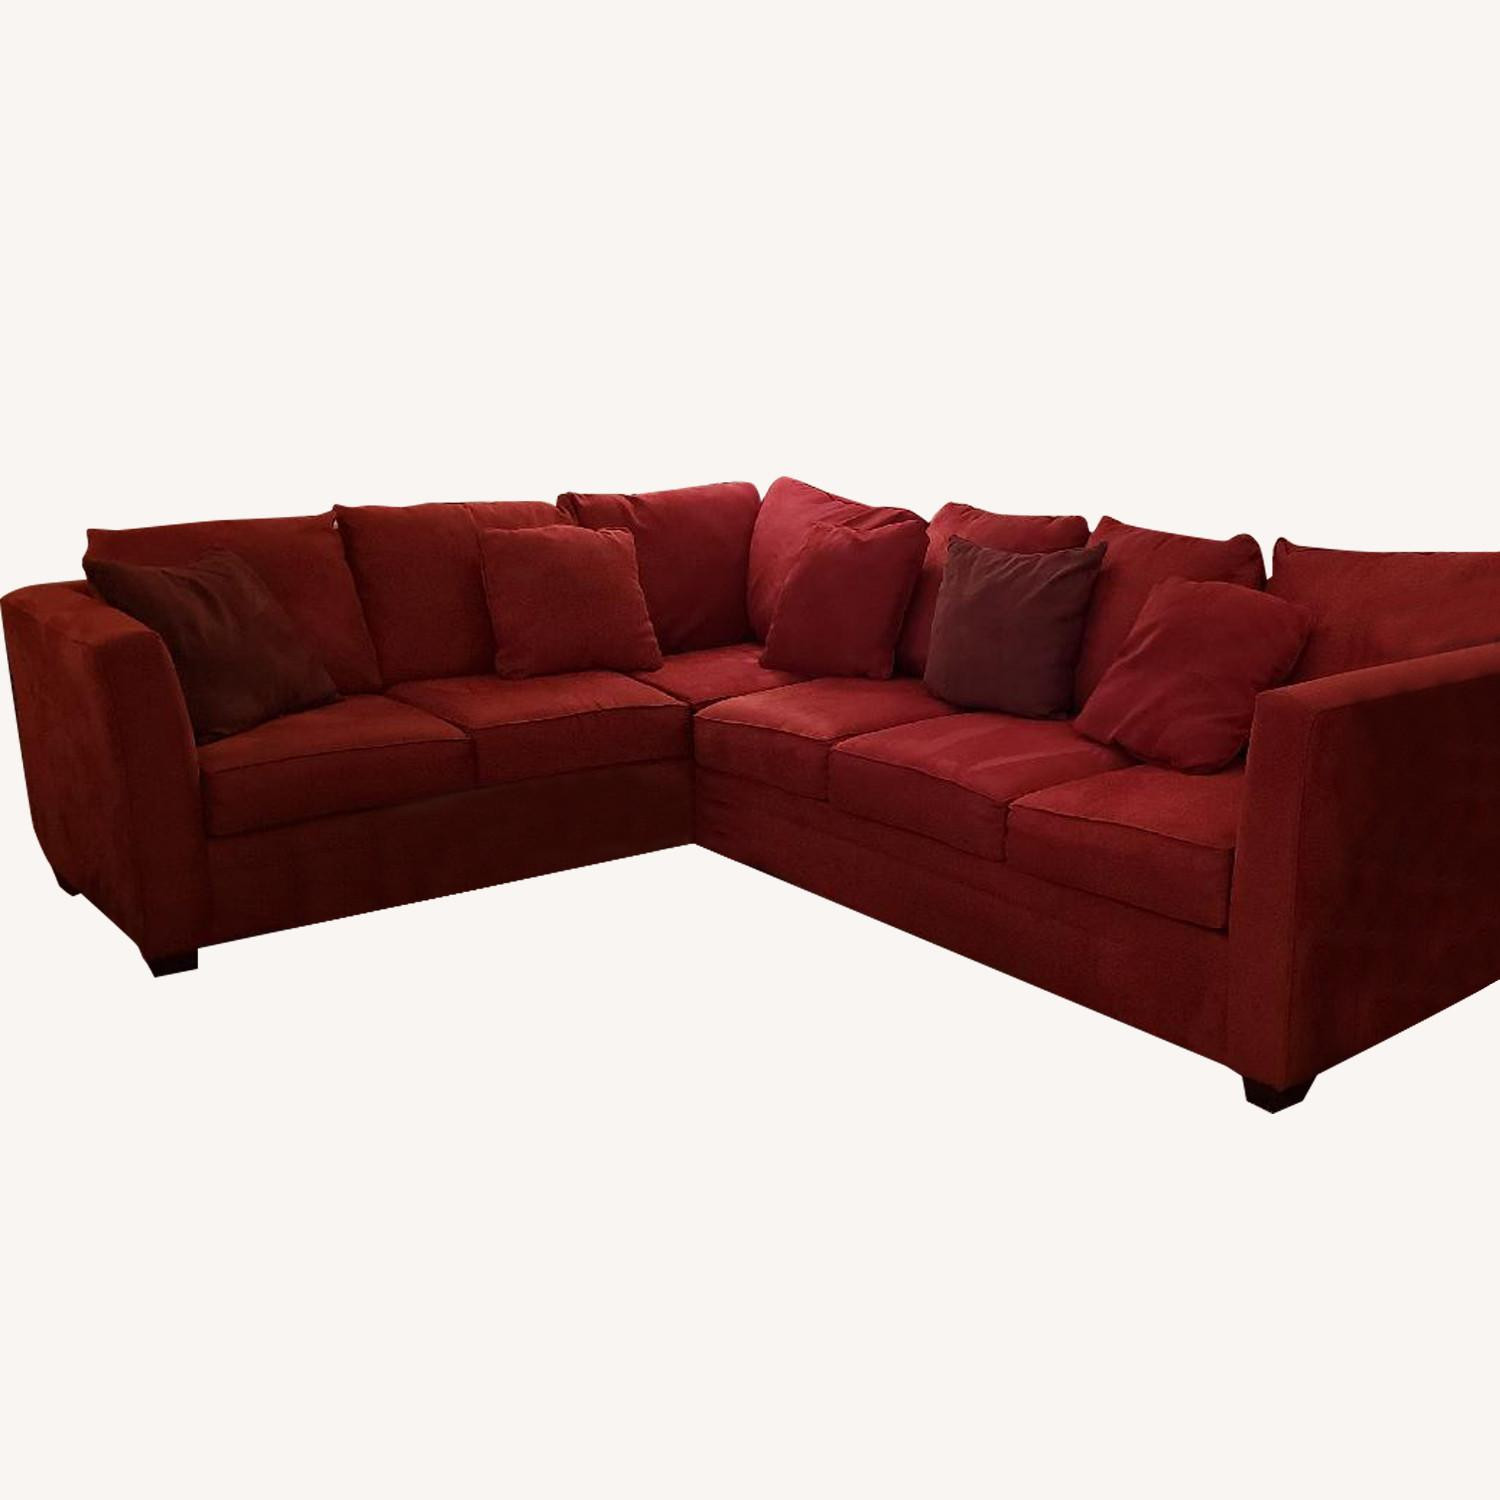 Macy's Davis 2-Piece Sectional Sofa